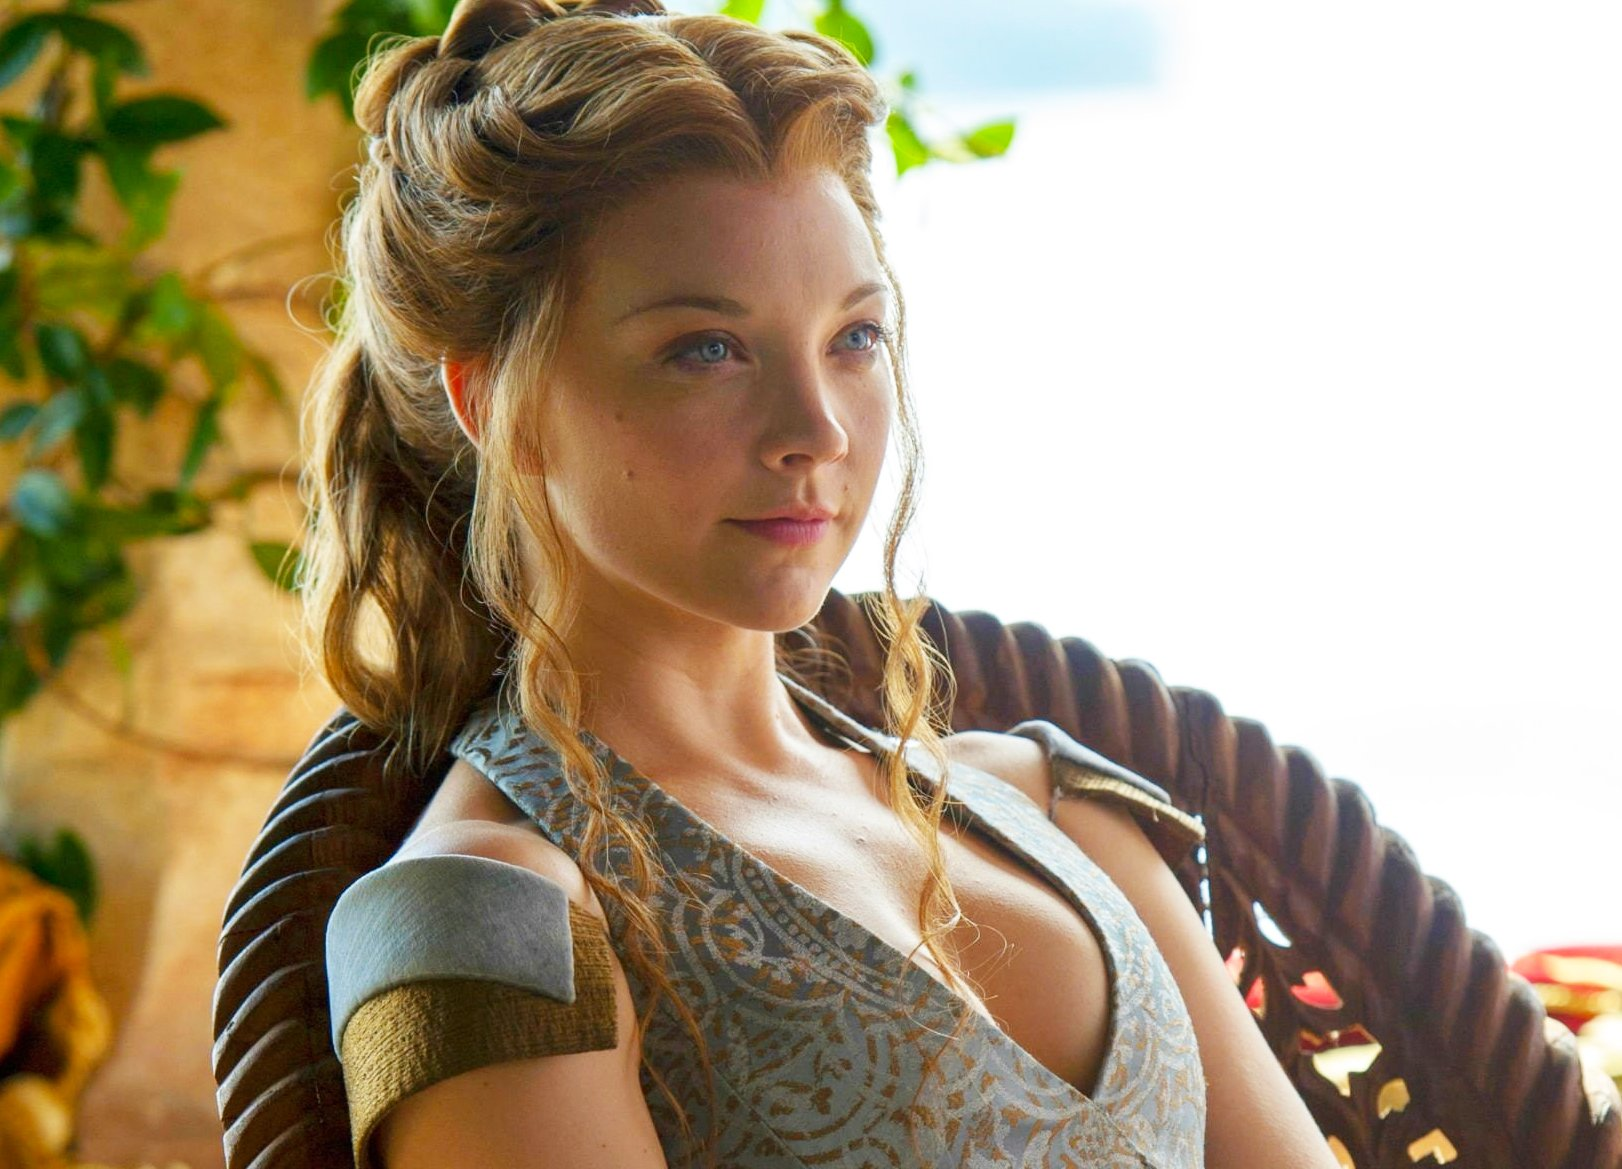 Natalie Dormer's Controversial View On Nudity After Game Of Thrones